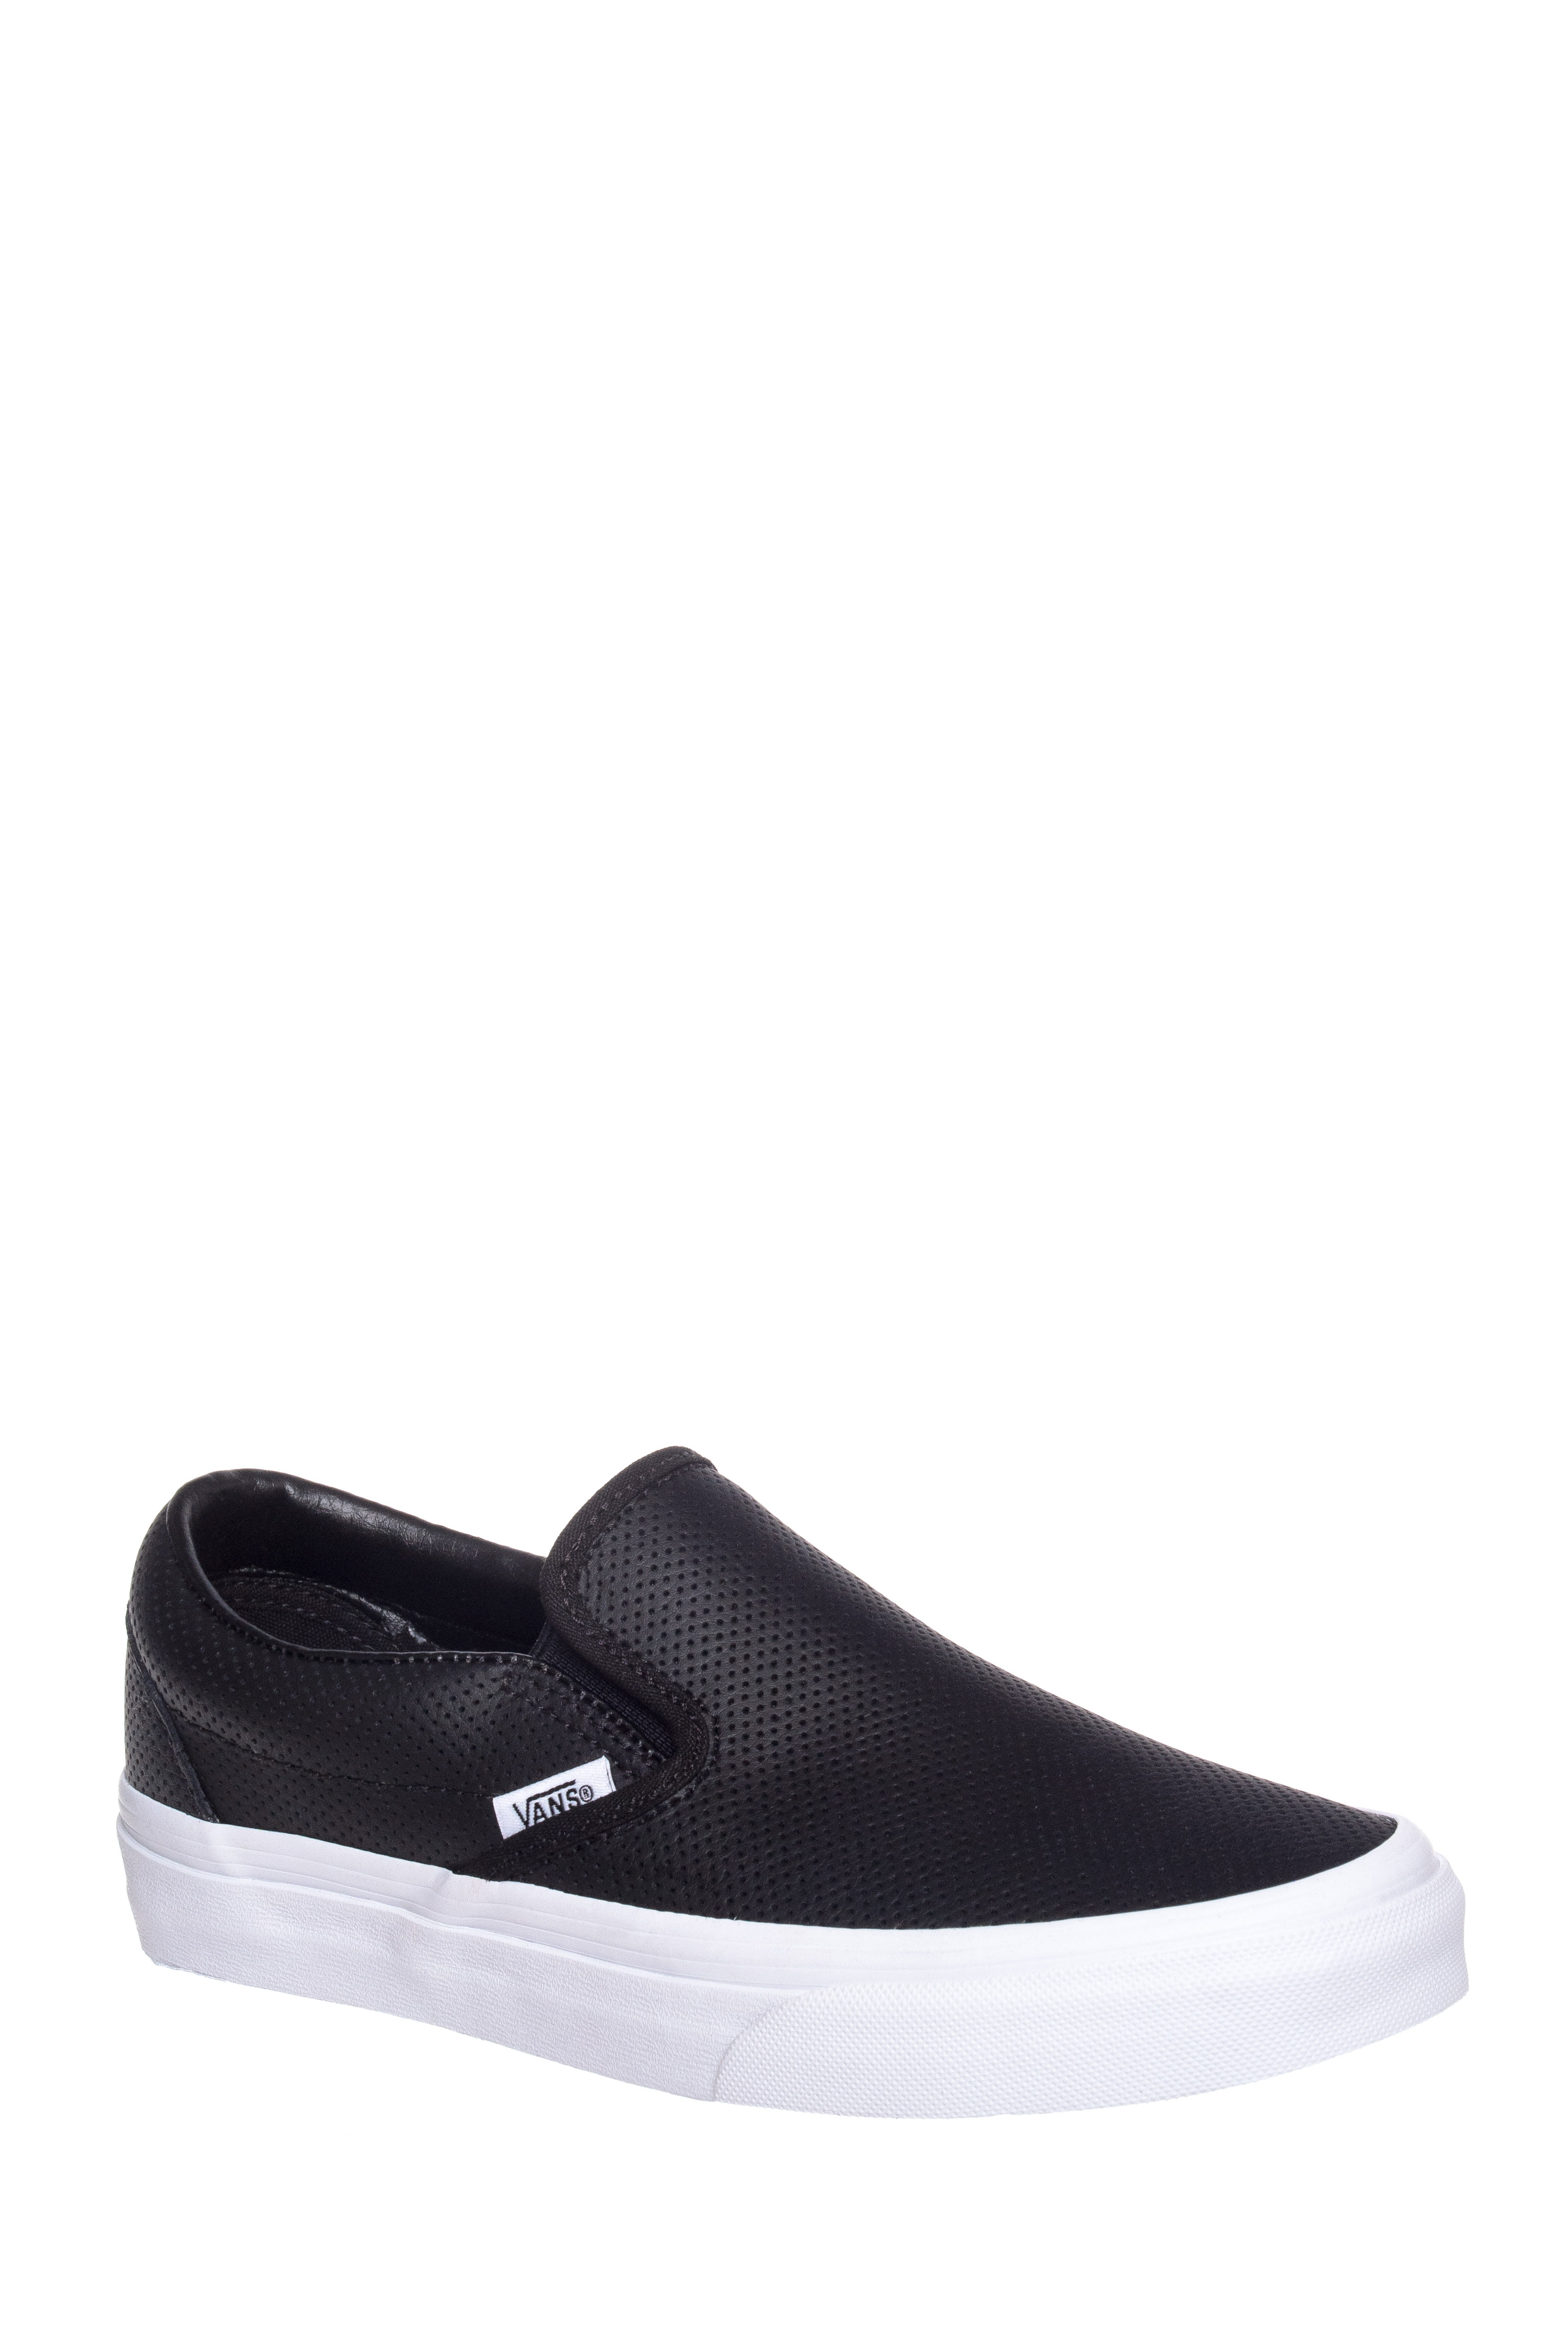 Vans Unisex Classic Perforated Leather Slip On Sneakers - Black